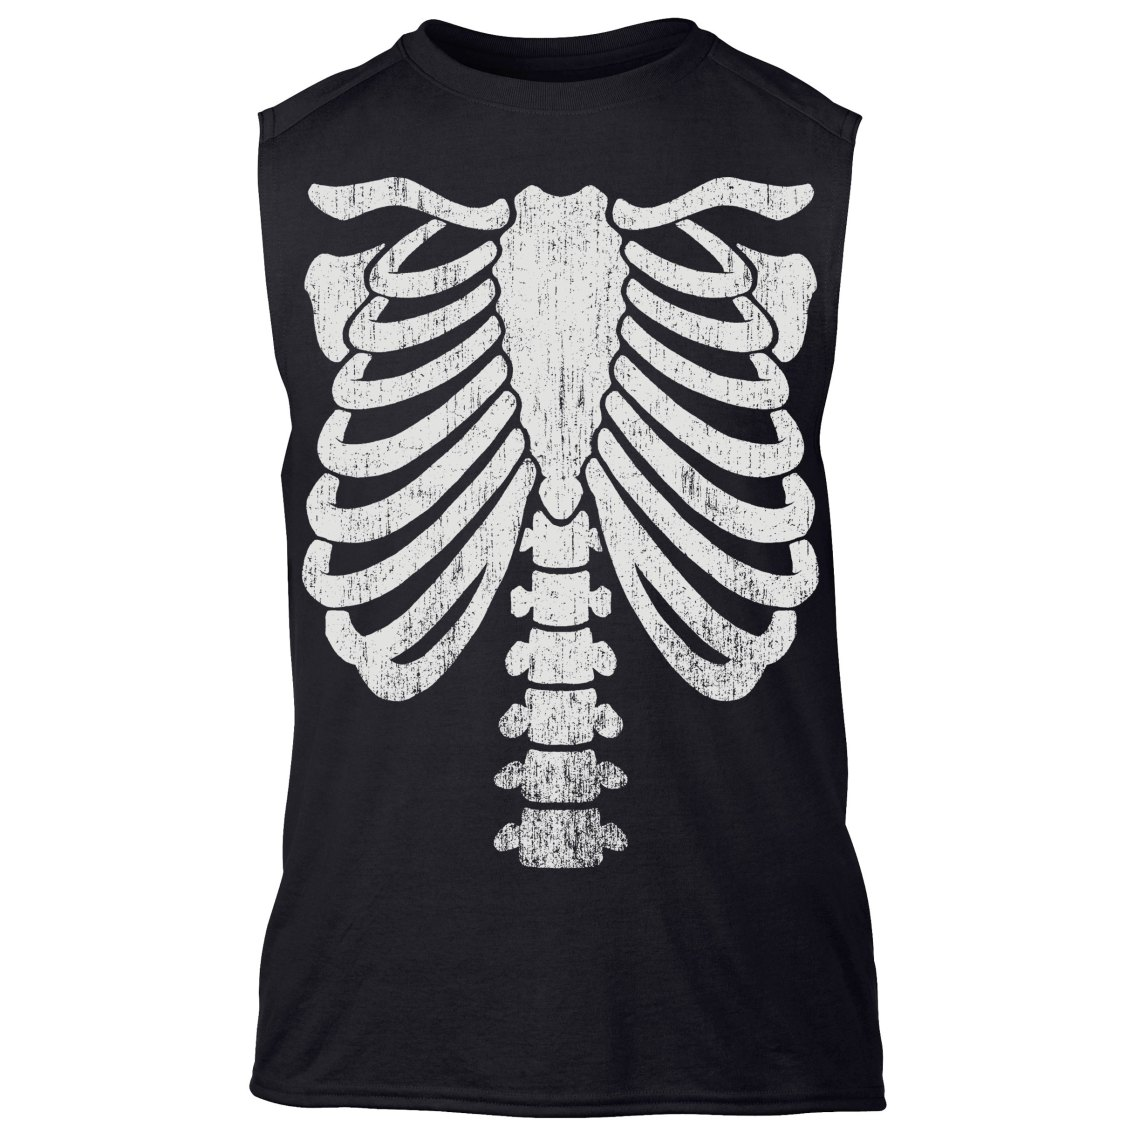 STORE APPAREL SKELETONTANKMEN